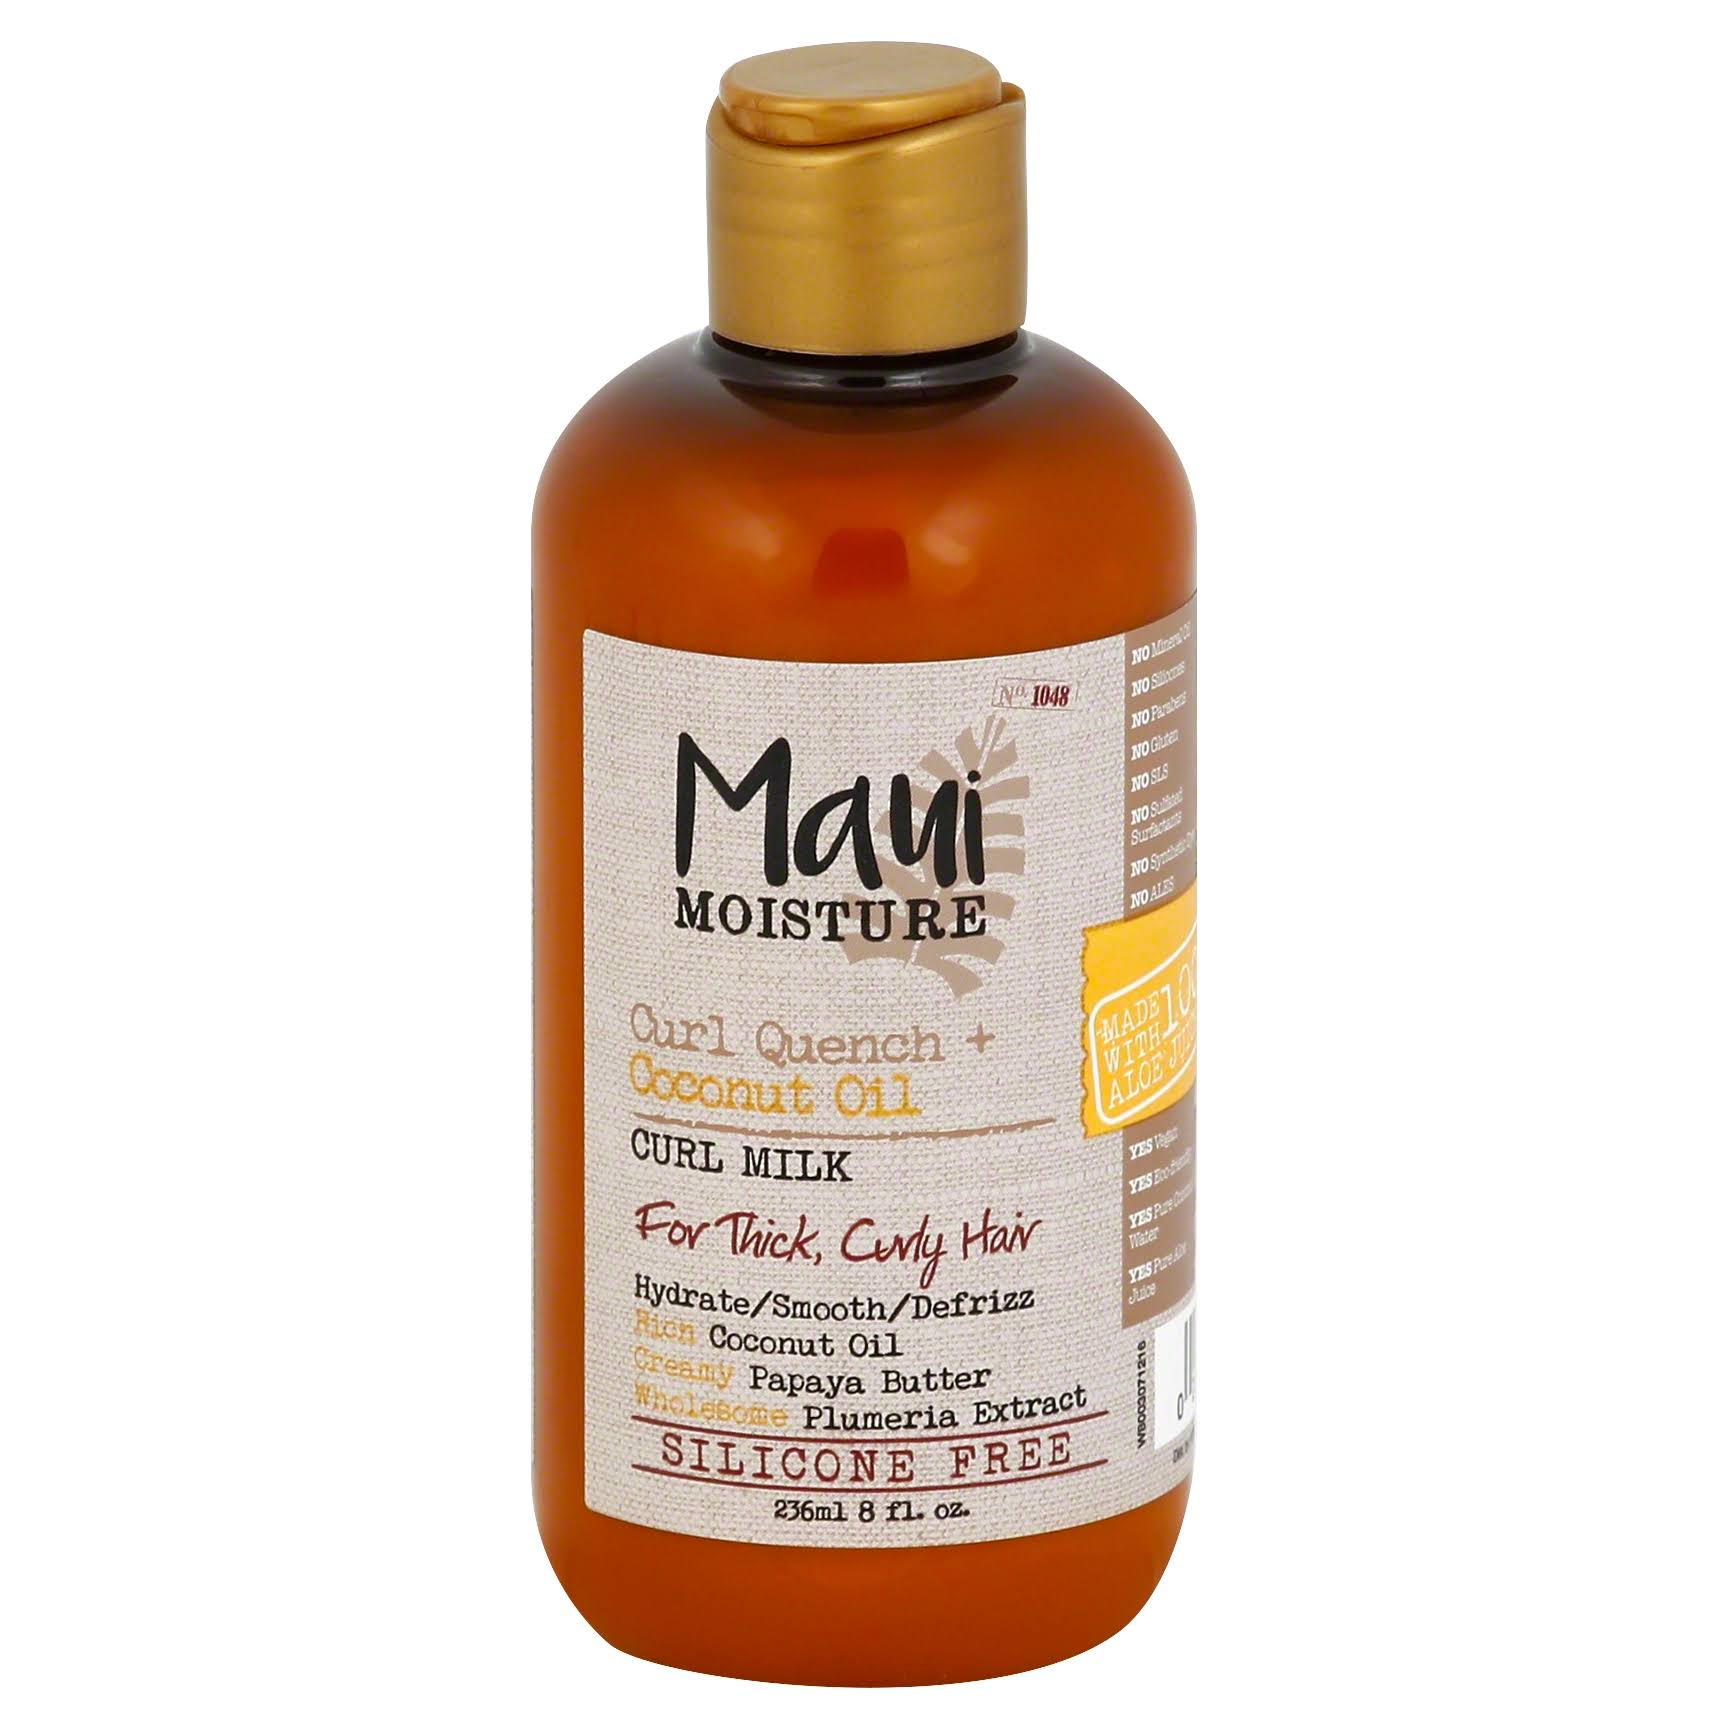 Maui Moisture Curl Quench Coconut Oil Curl Milk - 8oz